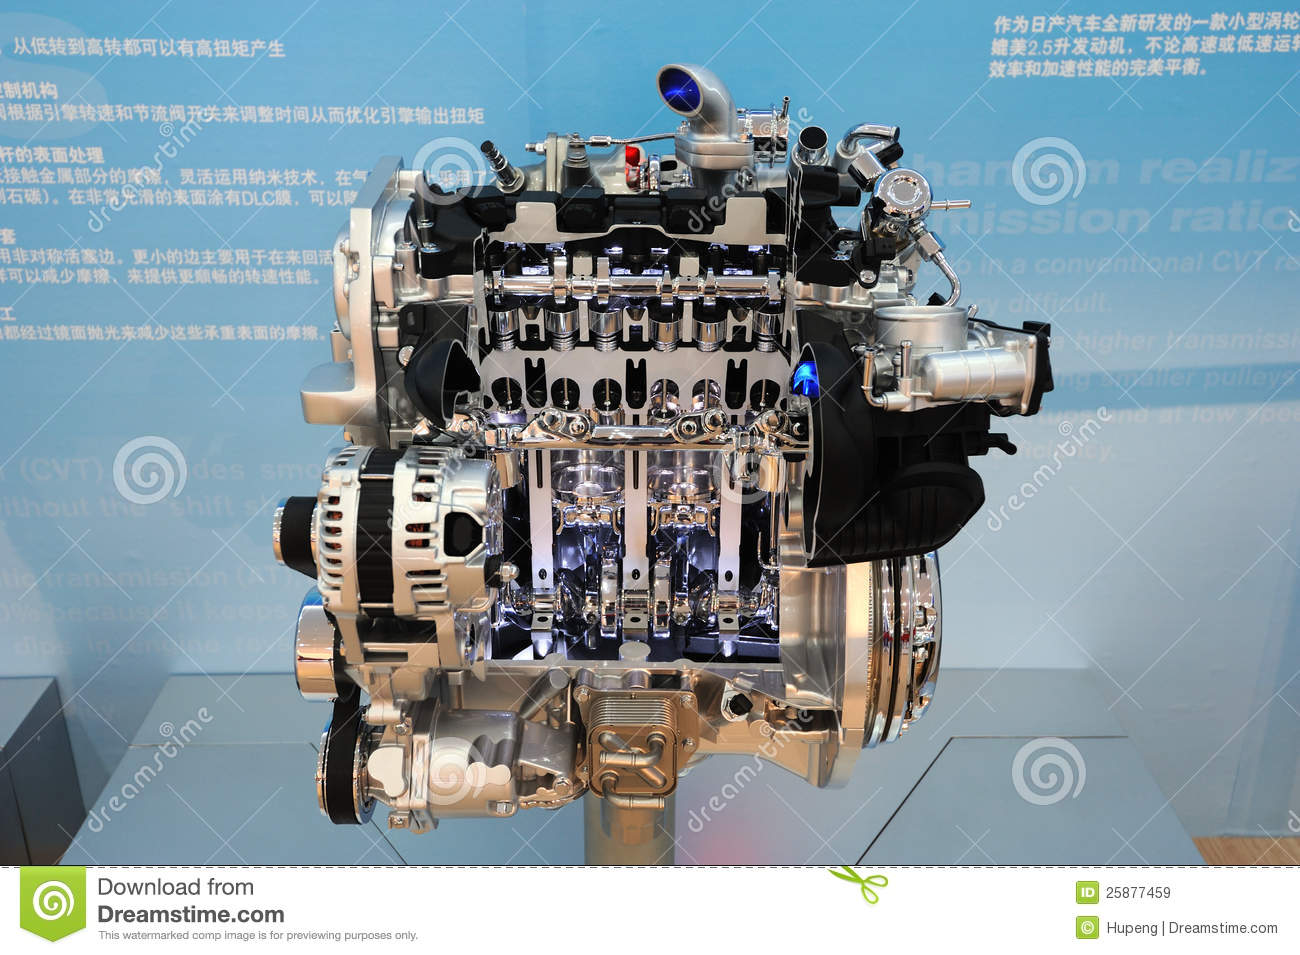 Nissan Car Engine MR16DDT Editorial Stock Image - Image ...